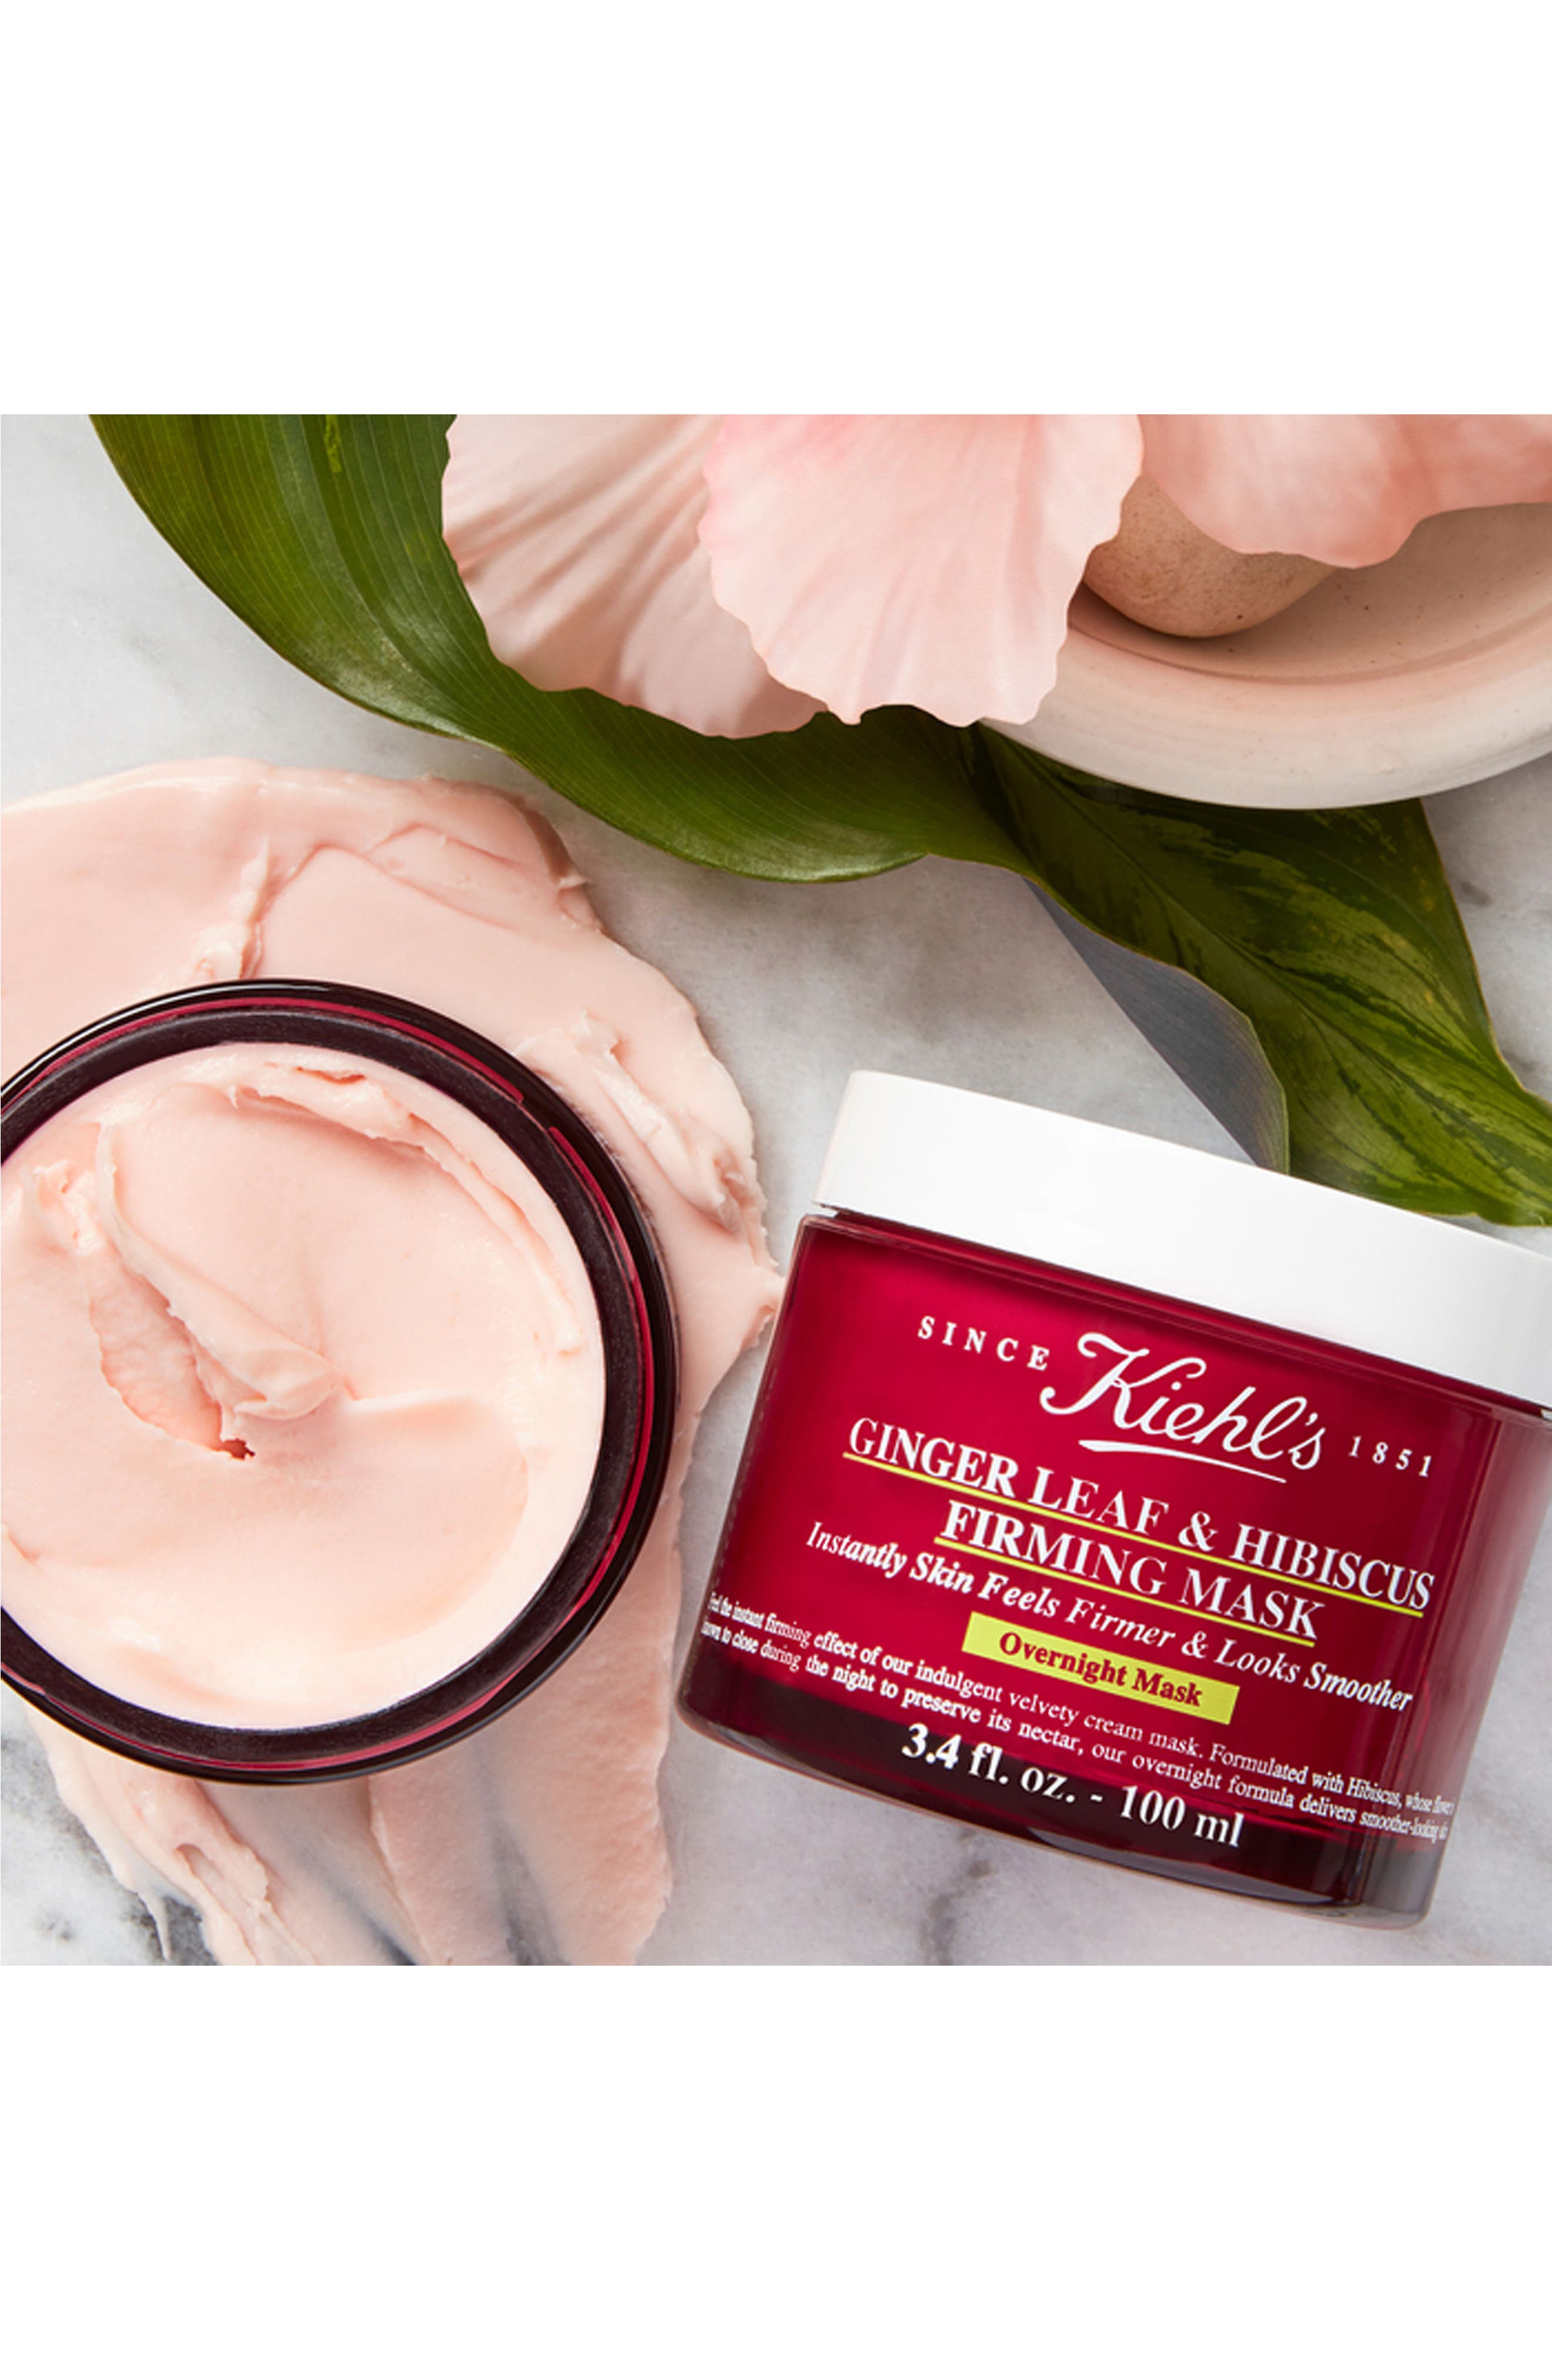 Ginger Leaf & Hibiscus Firming Mask,                             Alternate thumbnail 4, color,                             NO COLOR